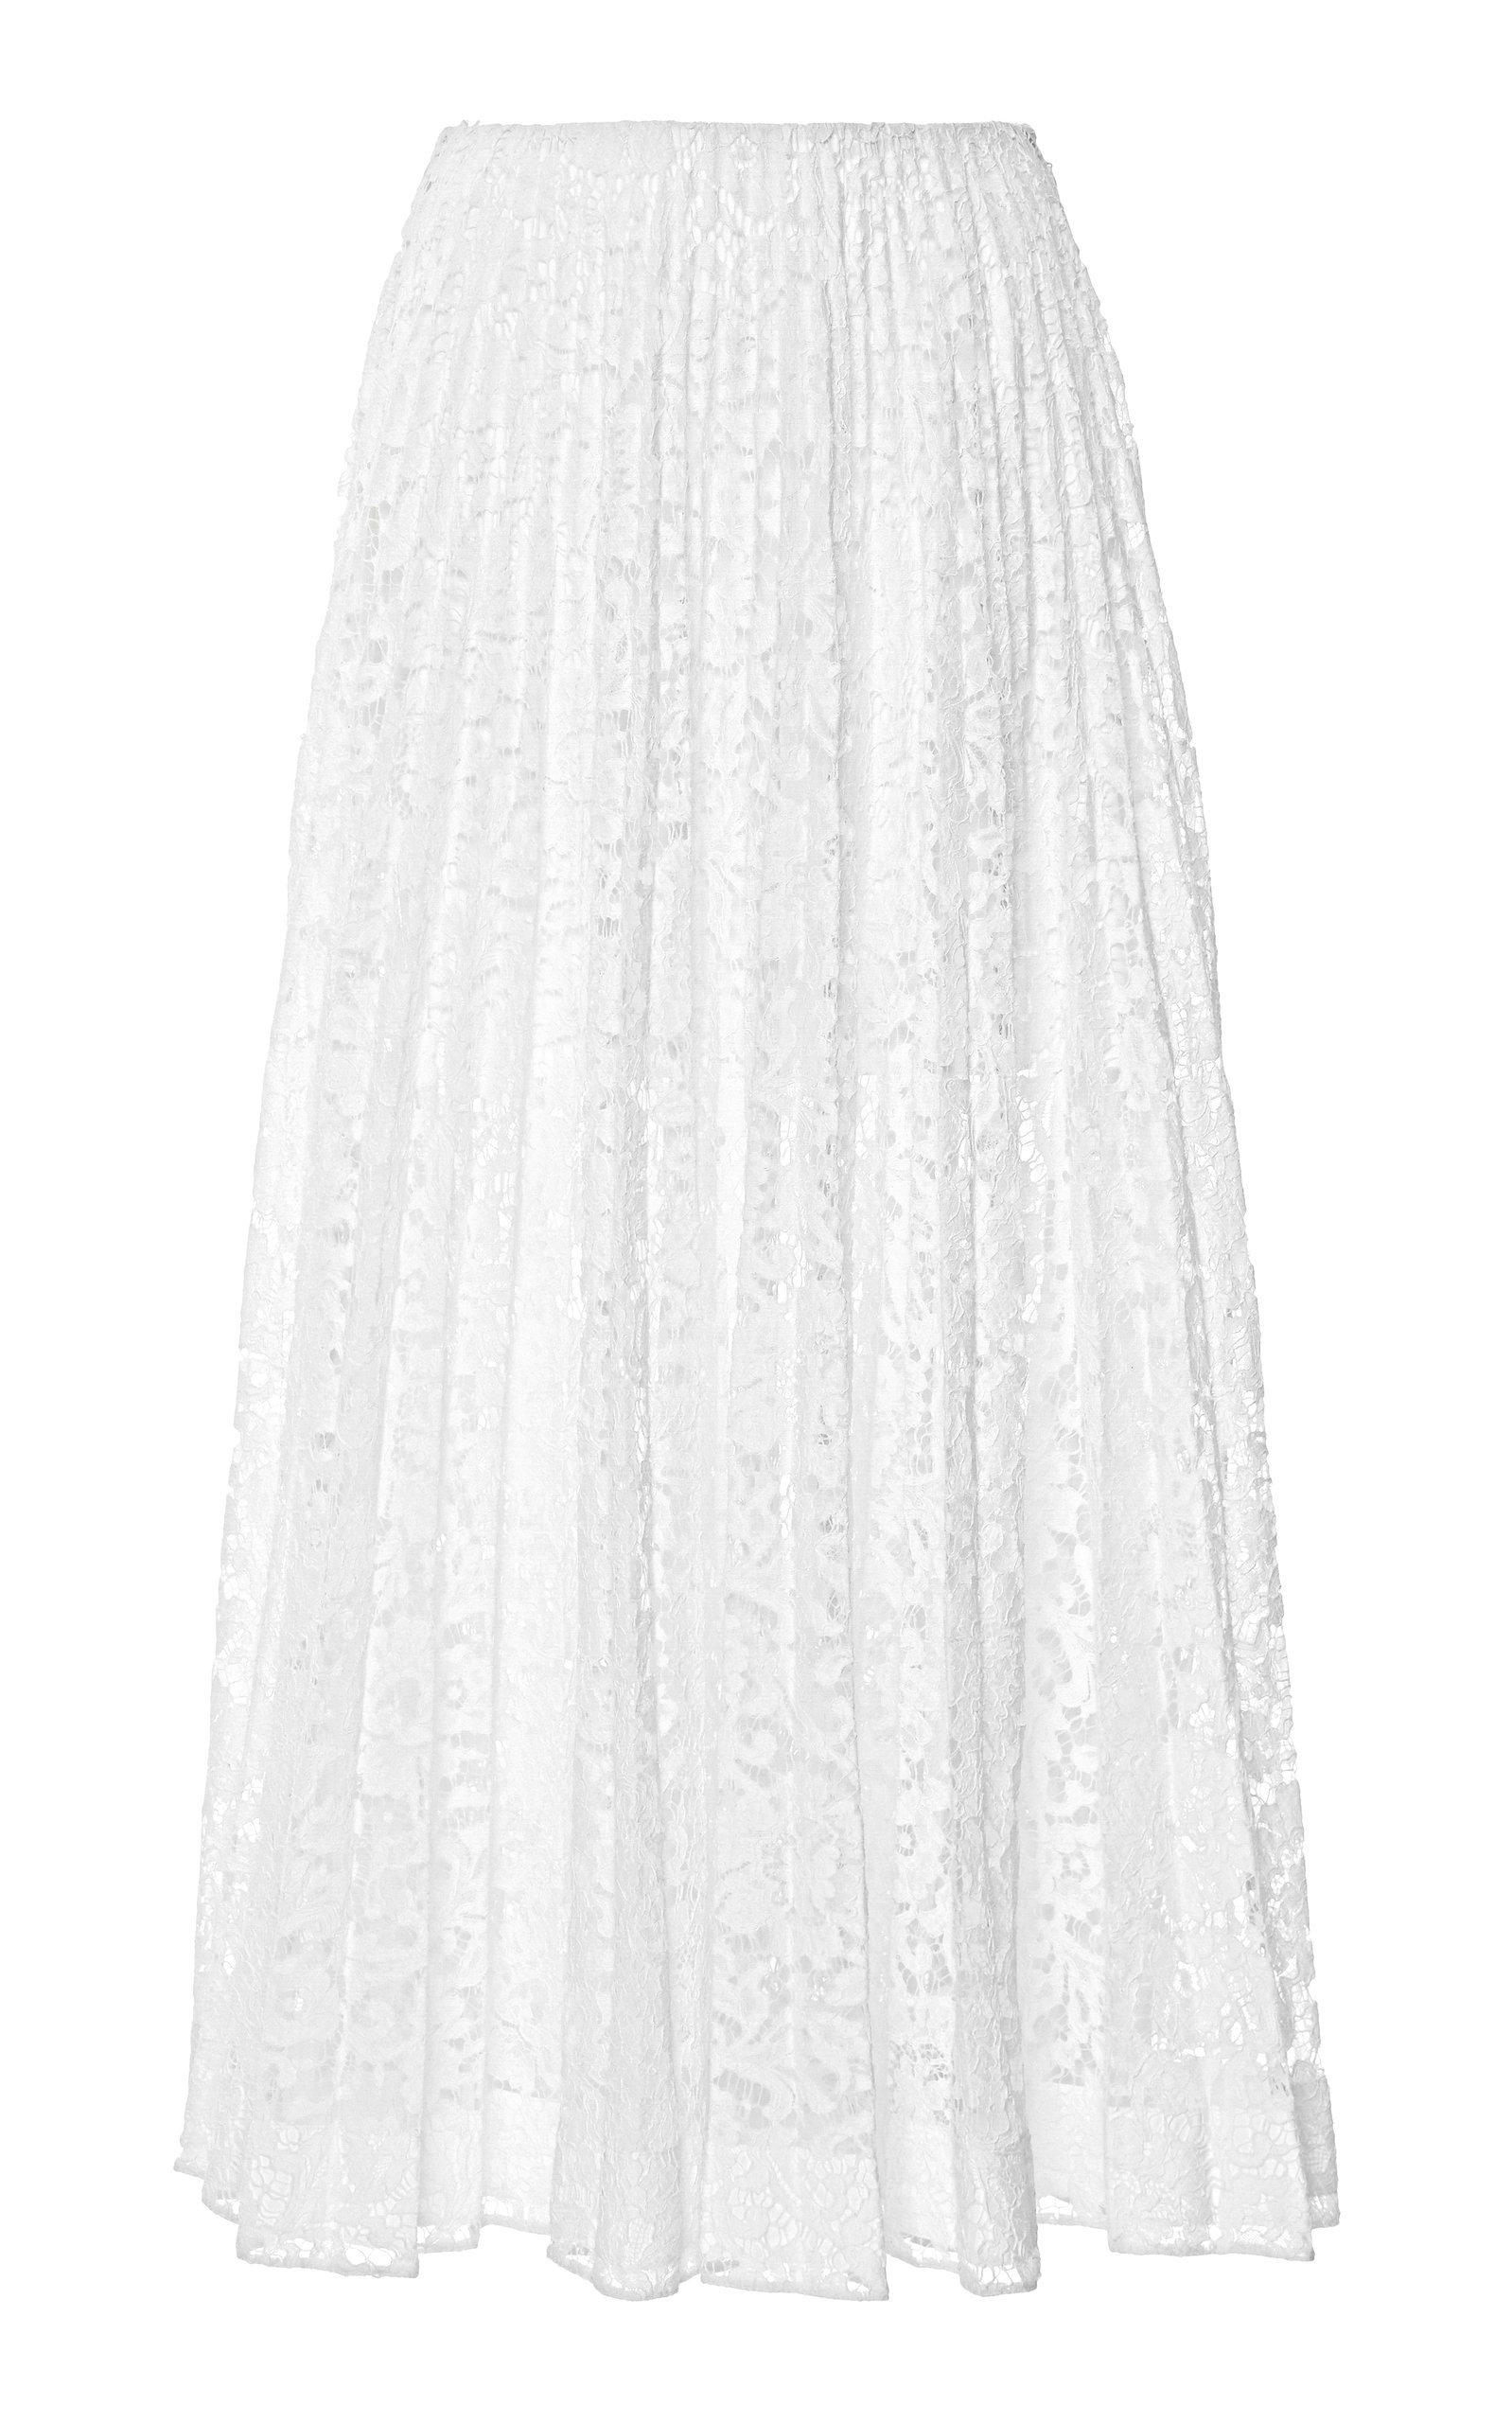 Valentino Sheer Pleated Lace Maxi Skirt Size: 36